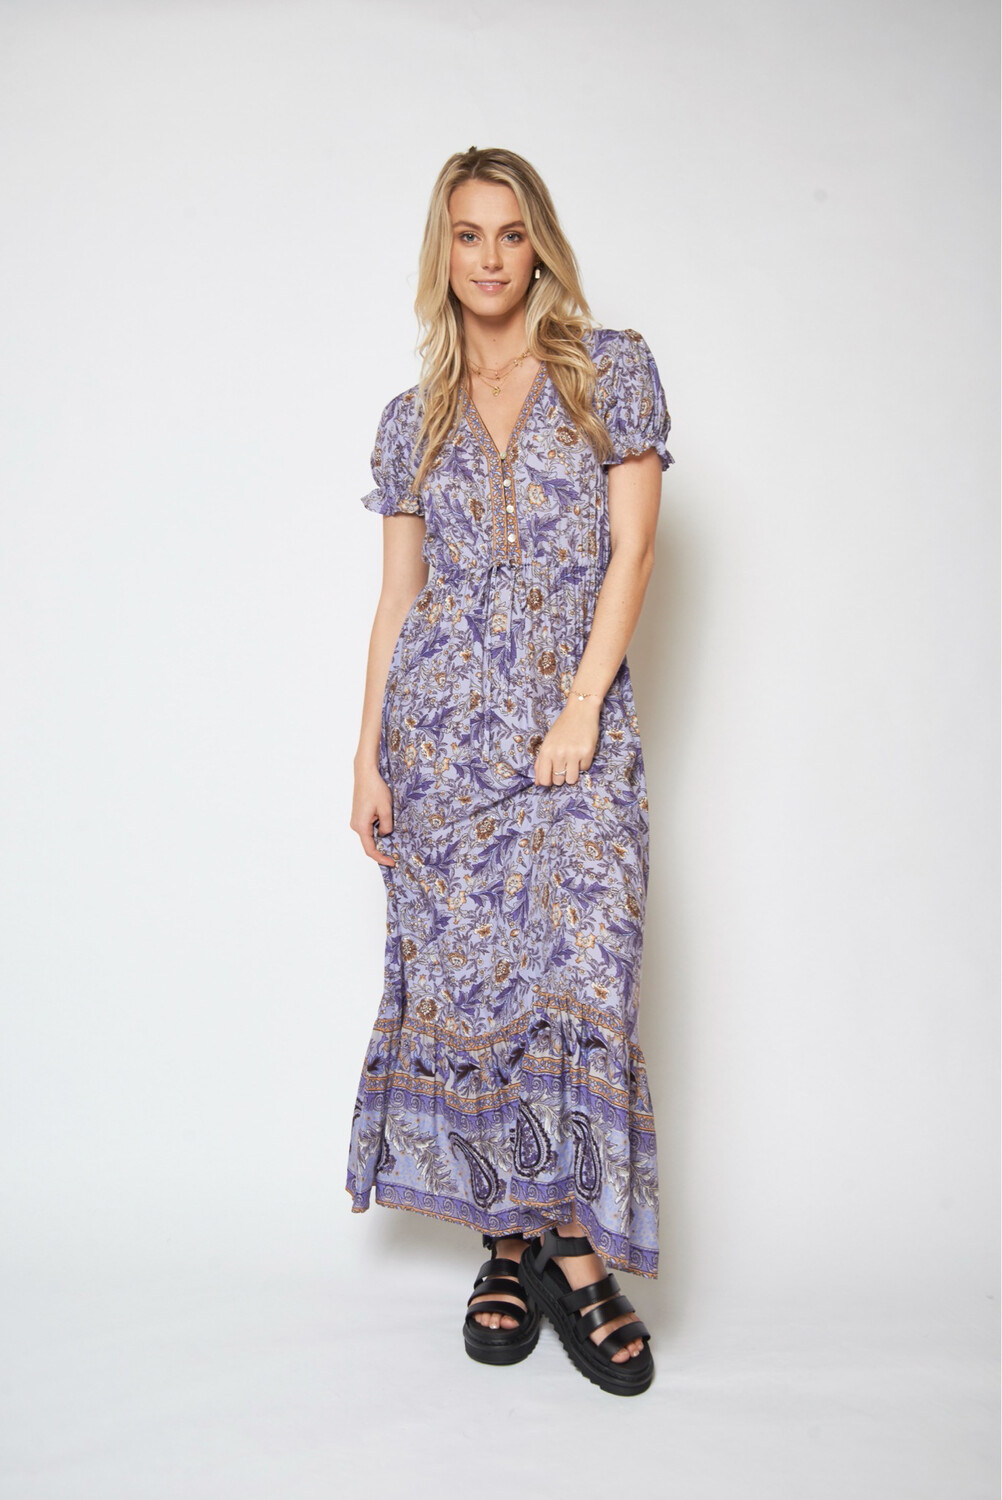 More Is More Maxi Dress